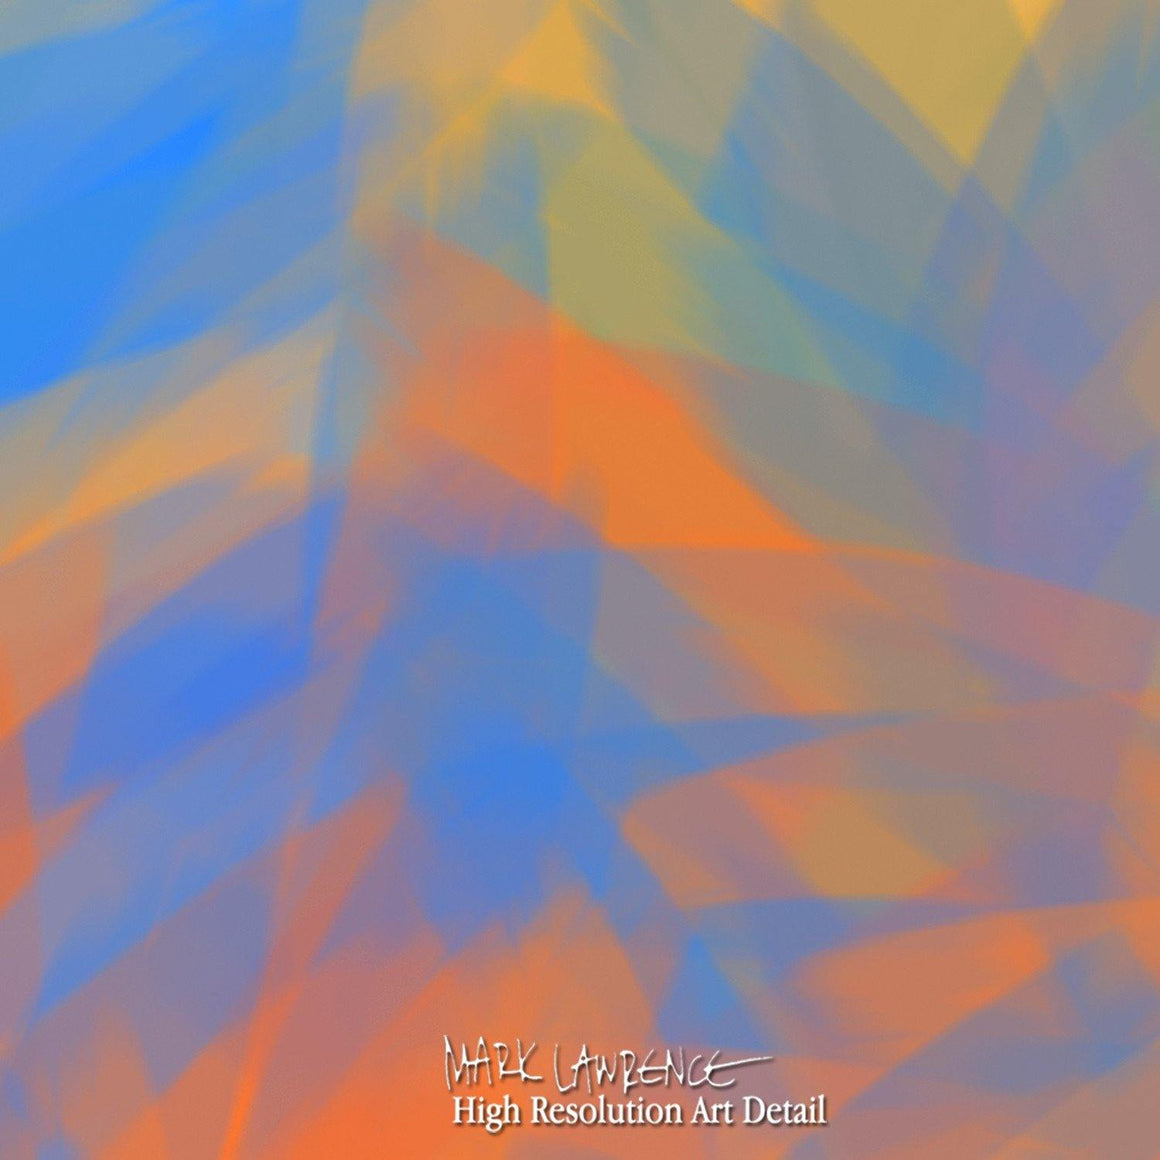 Large Painting Detail- Christian Art-Mark Lawrence-Psalm 30:11. Versevisions inspirational art by Mark Lawrence. Artist Direct- Original limited edition signed canvas & paper giclees